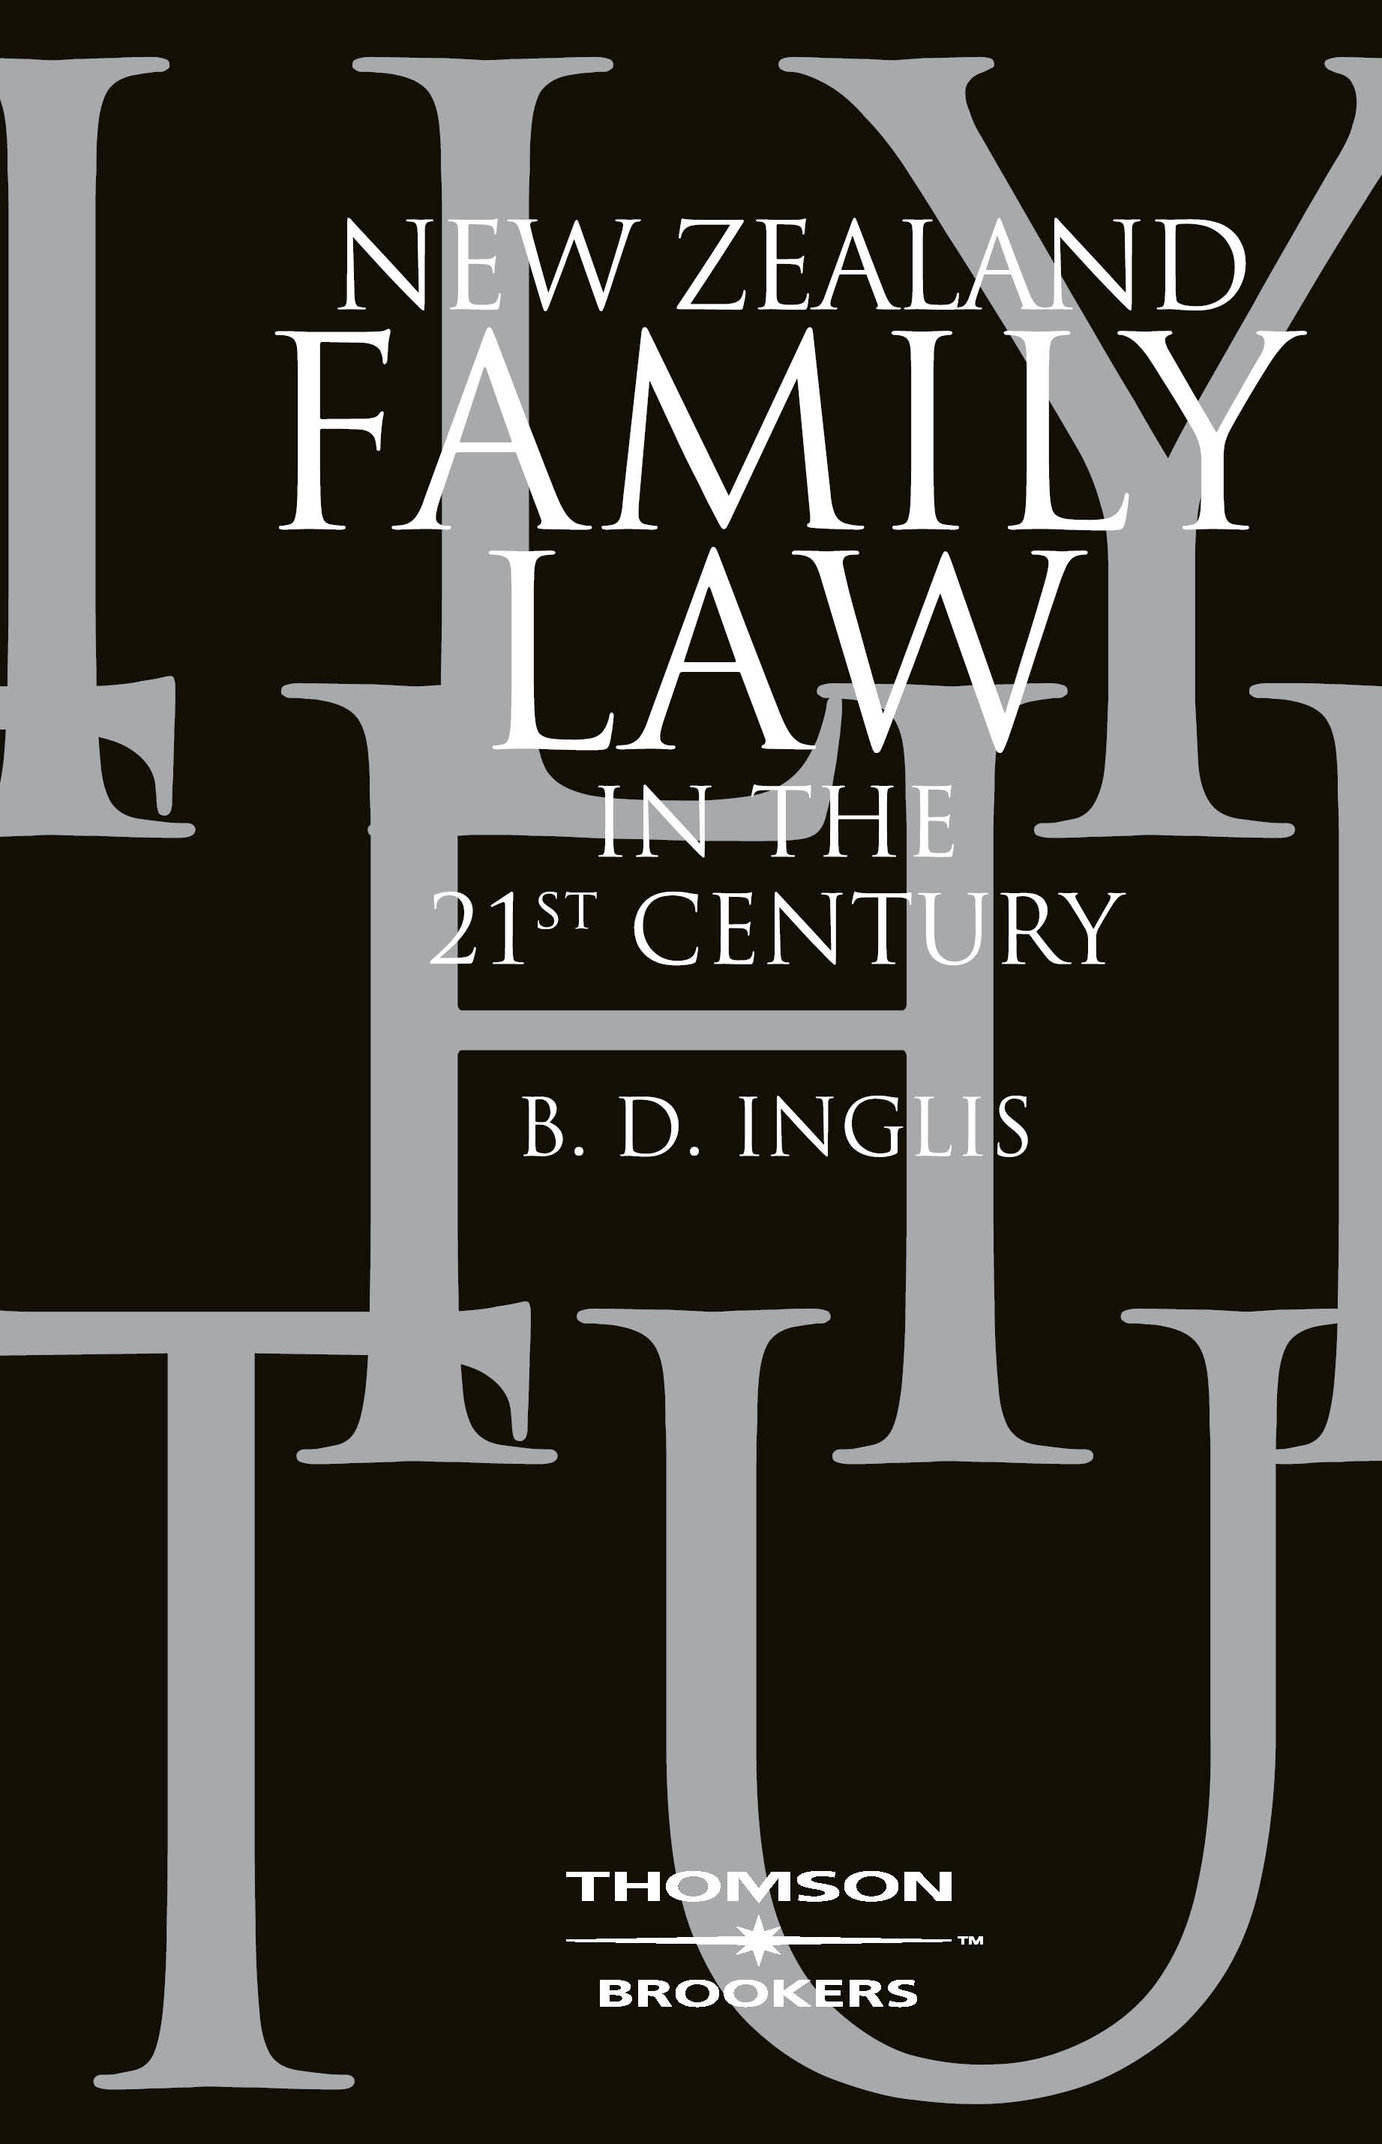 New Zealand Family Law in the 21st Century (Book)